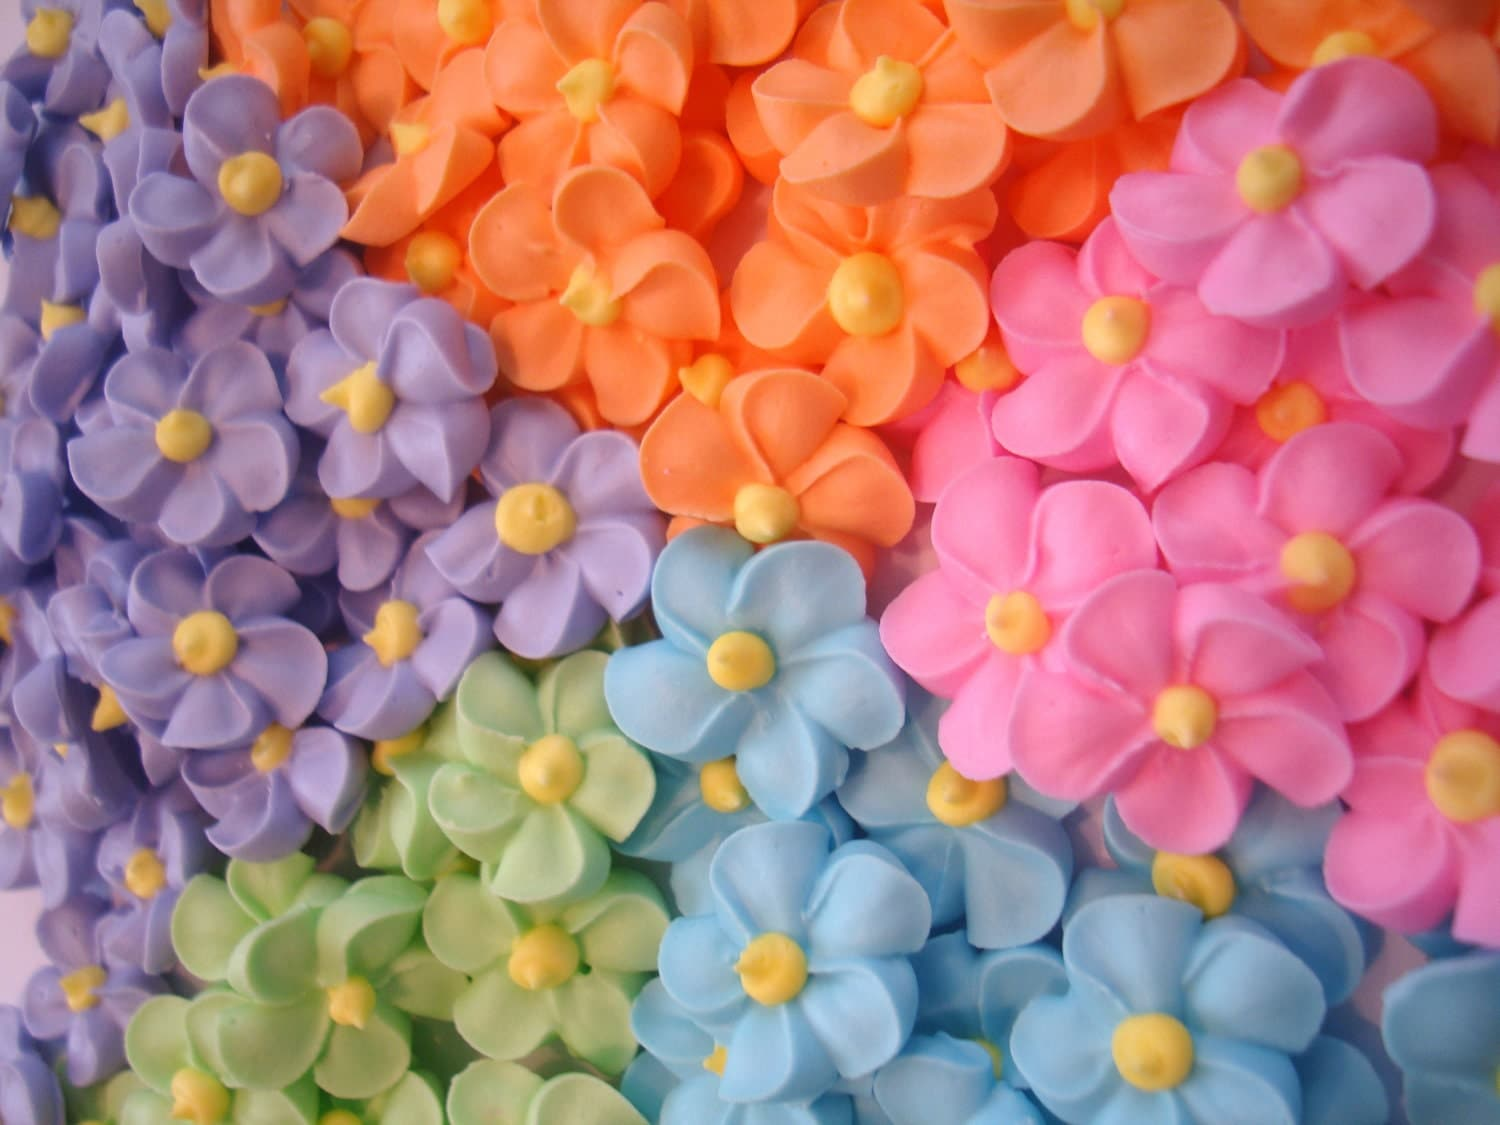 LOT of 100 royal icing flowers for Cake Decorating great for